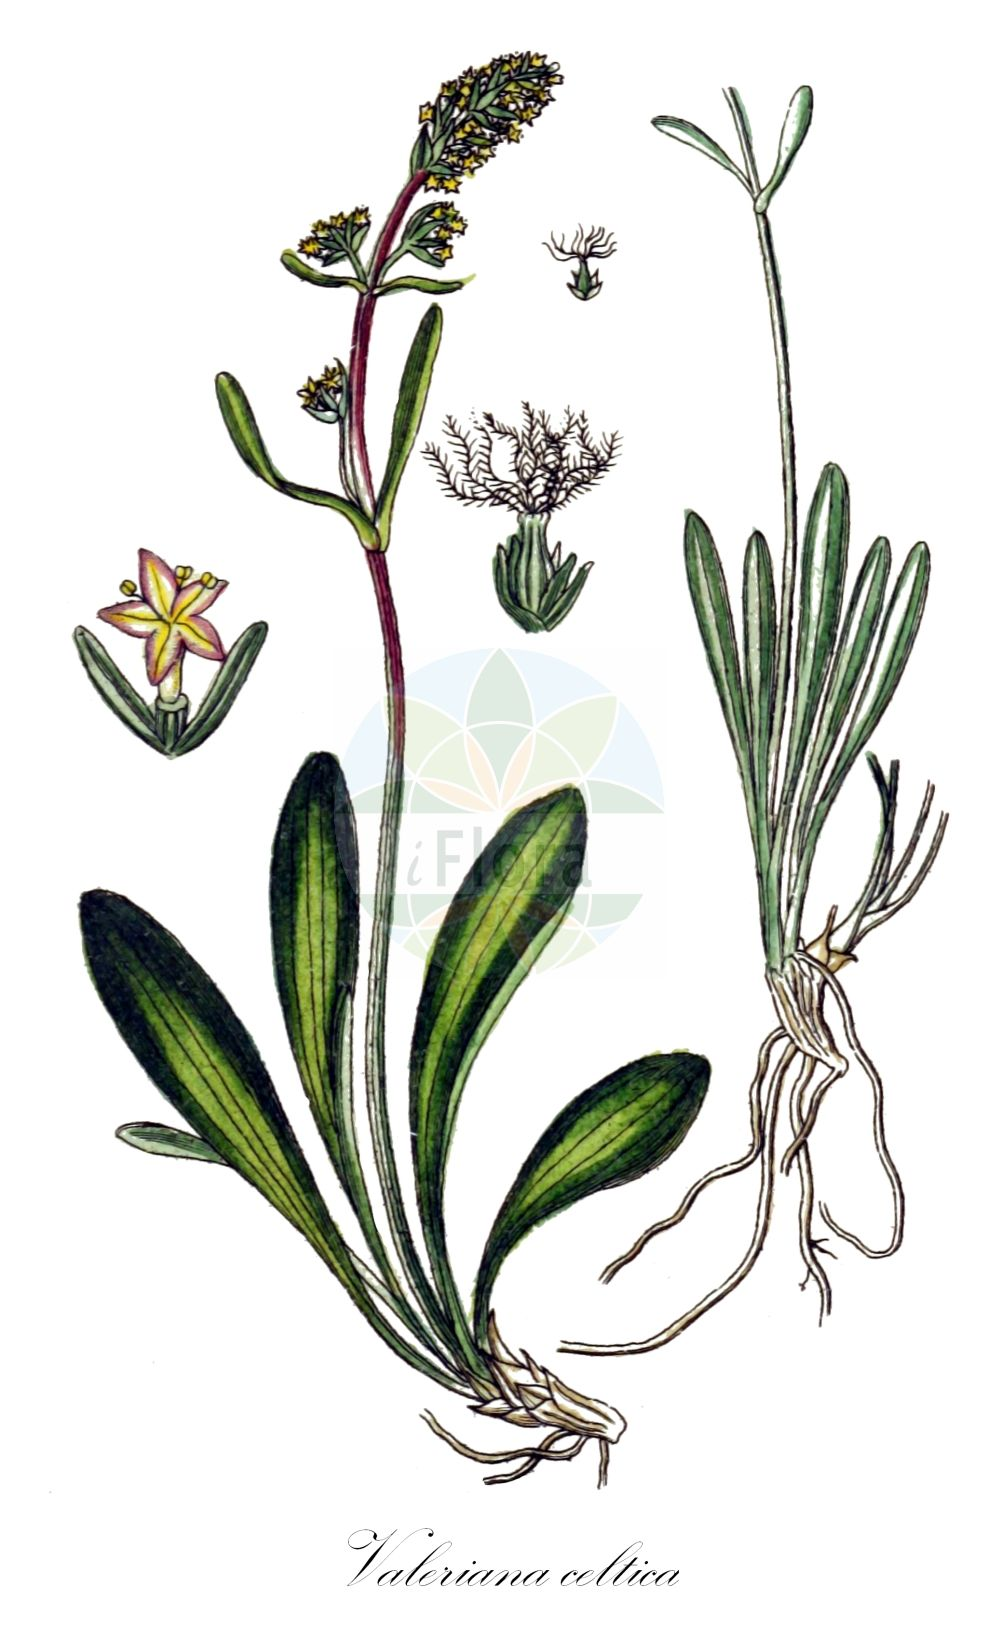 Historische Abbildung von Valeriana celtica. Das Bild zeigt Blatt, Bluete, Frucht und Same. ---- Historical Drawing of Valeriana celtica.The image is showing leaf, flower, fruit and seed.(Valeriana celtica,Valeriana,Baldrian,Valerian,Caprifoliaceae,Geissblattgewaechse,Honeysuckle family,Blatt,Bluete,Frucht,Same,leaf,flower,fruit,seed,Sturm (1796f))